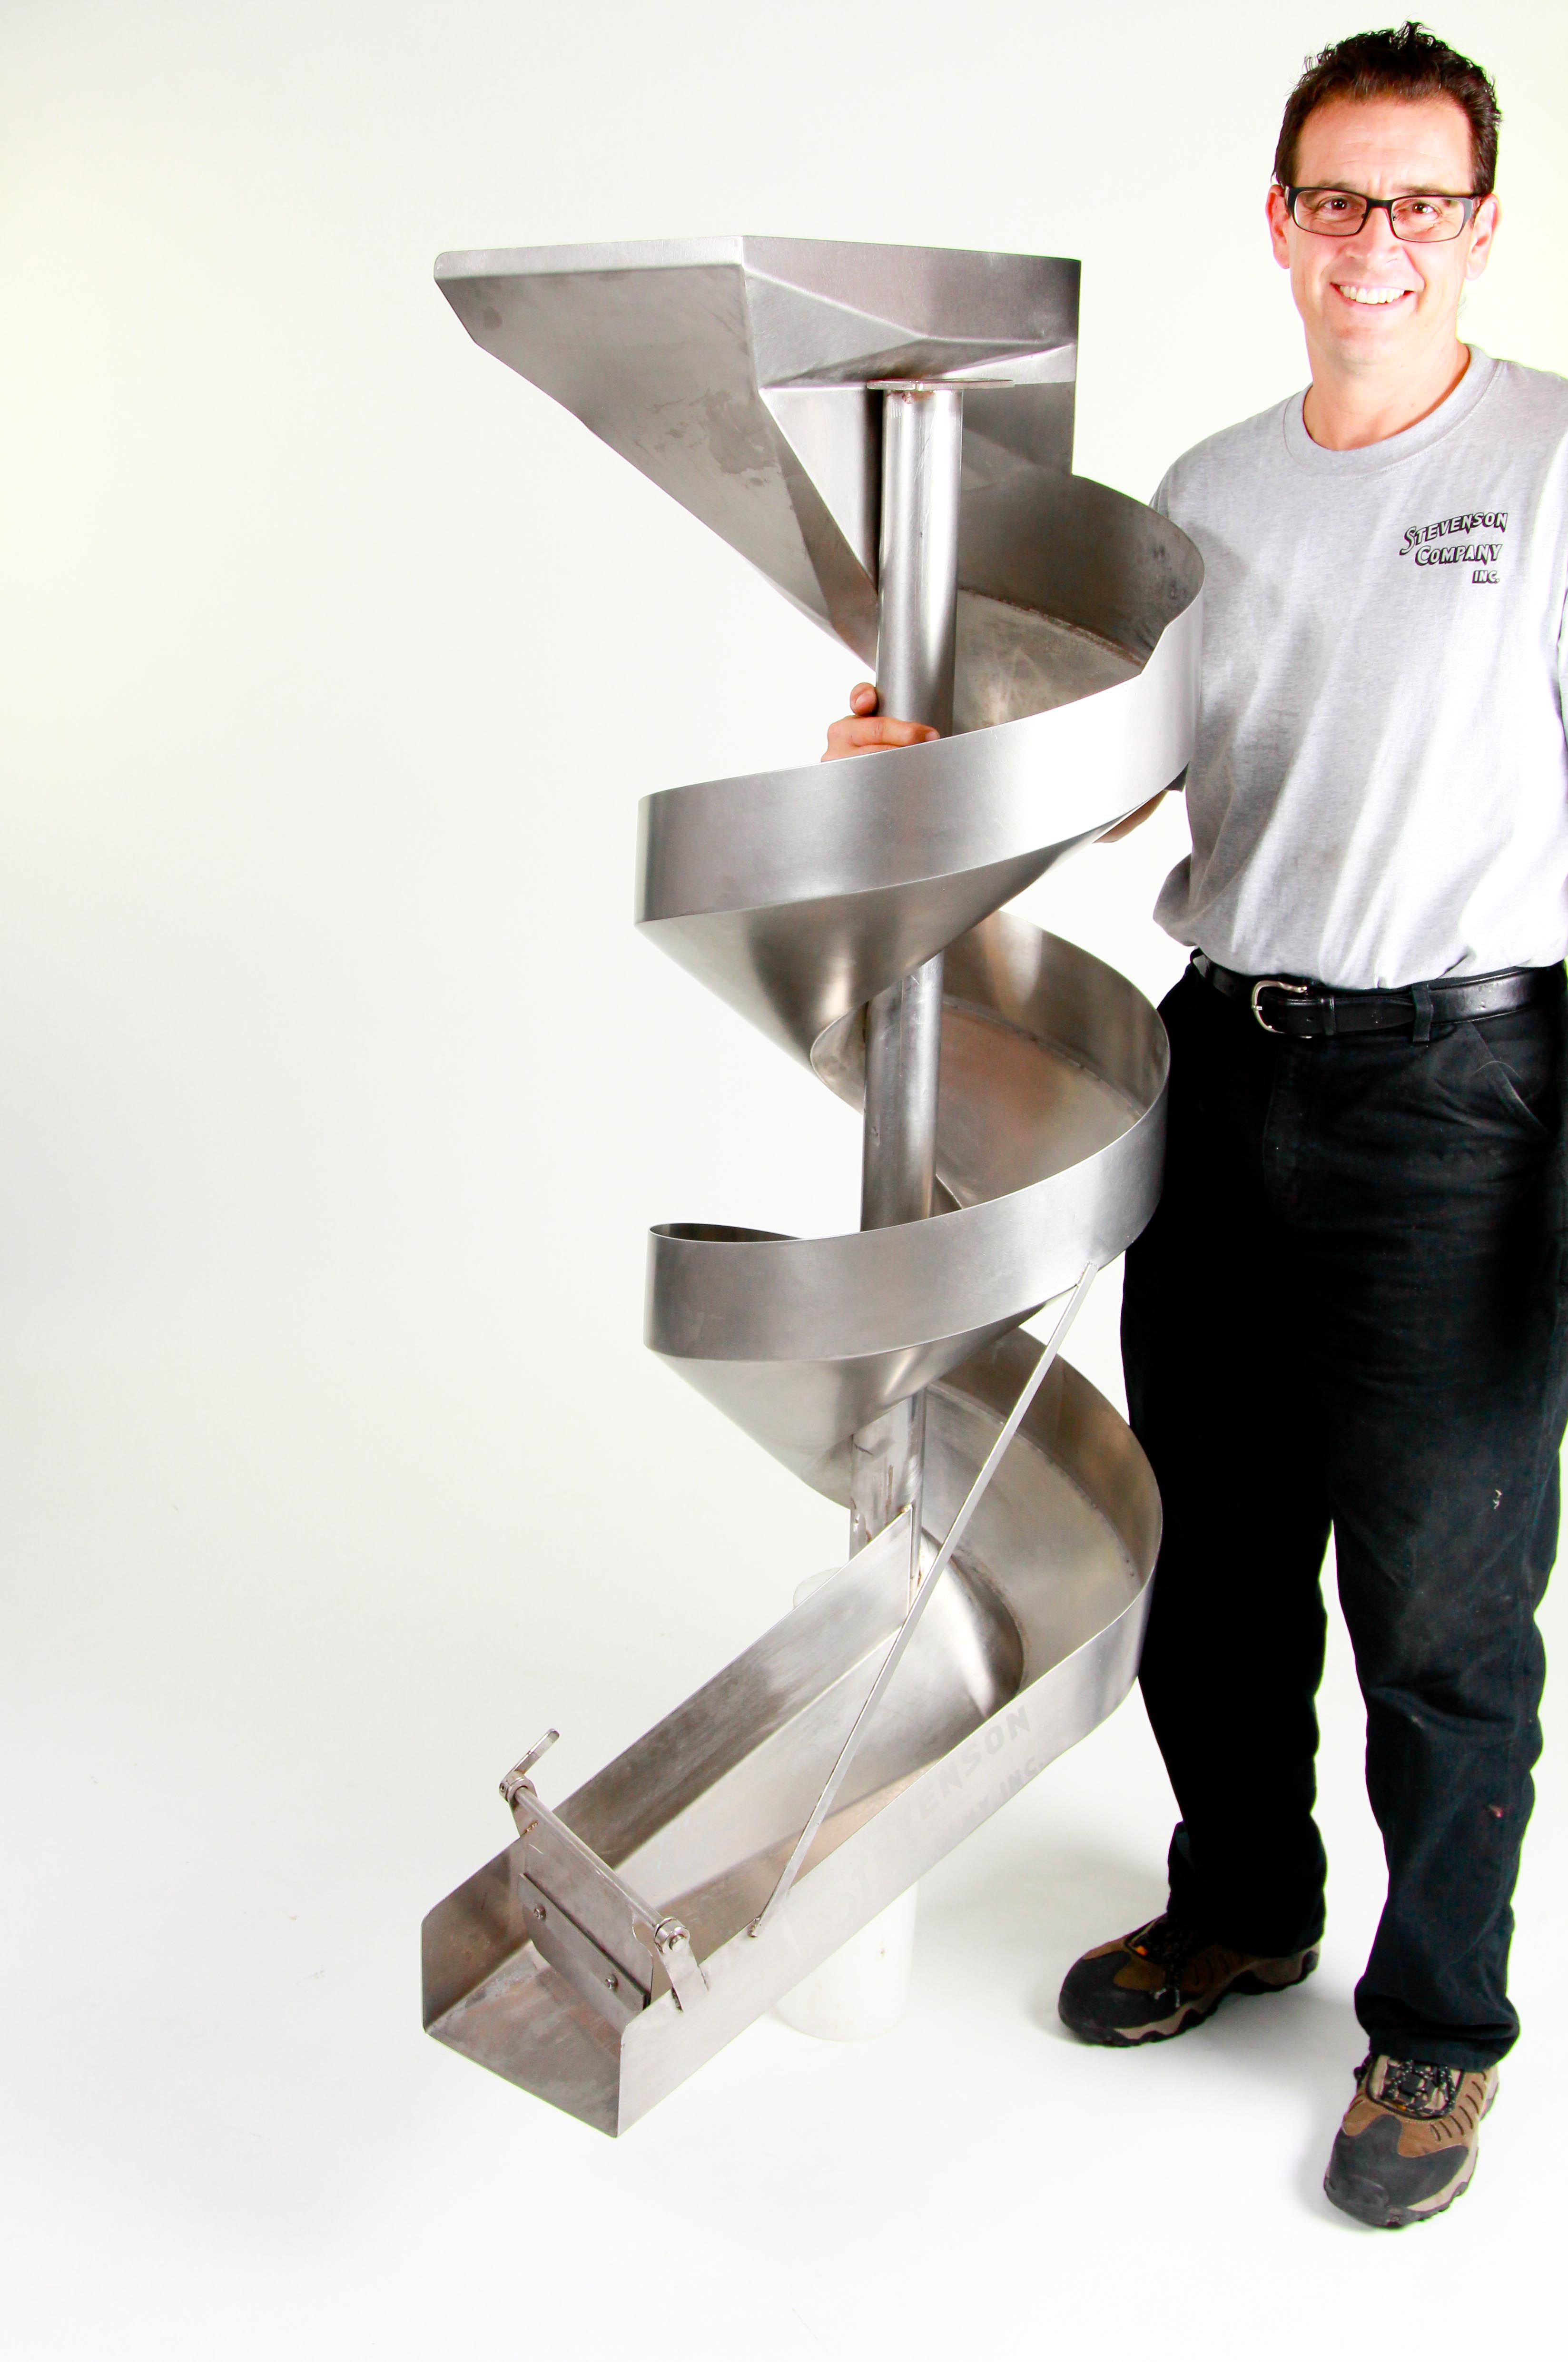 Joe Pennington, President/CEO of Stevenson Company, showing one of their stainless steel spiral chutes